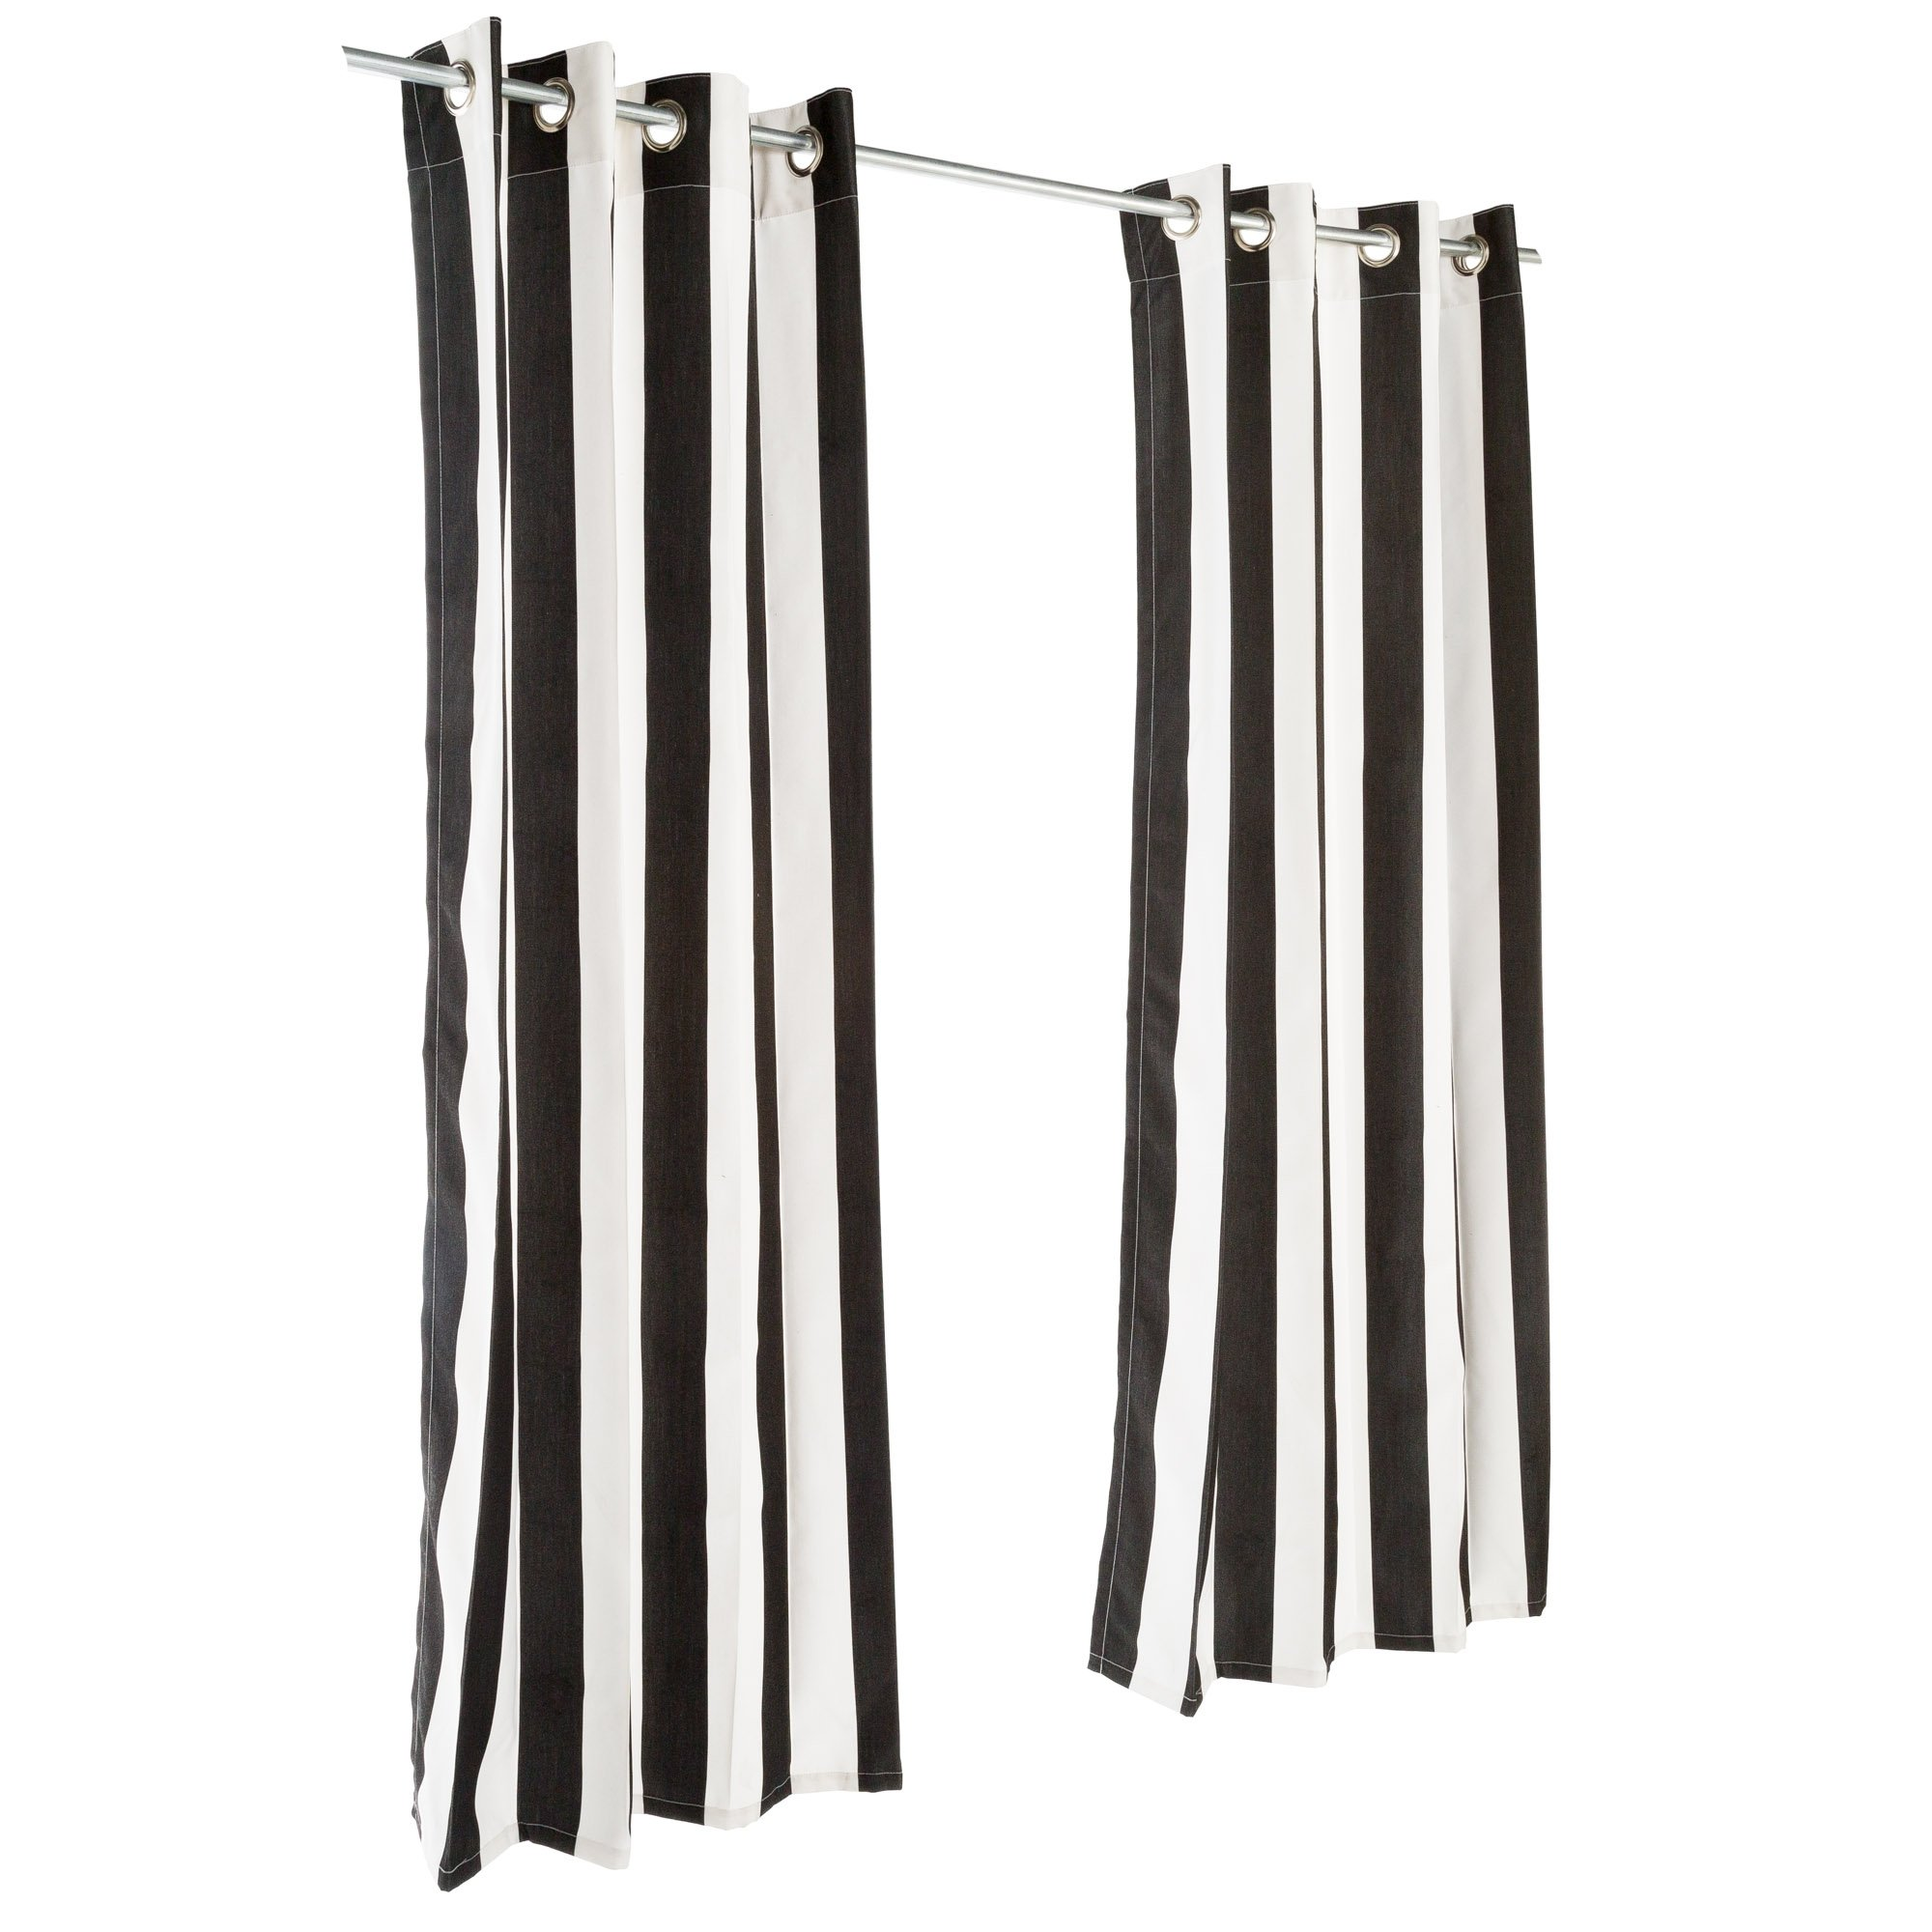 Pawleys Island Cabana Black Sunbrella Grommeted Outdoor Curtain 50'' W x 120'' L